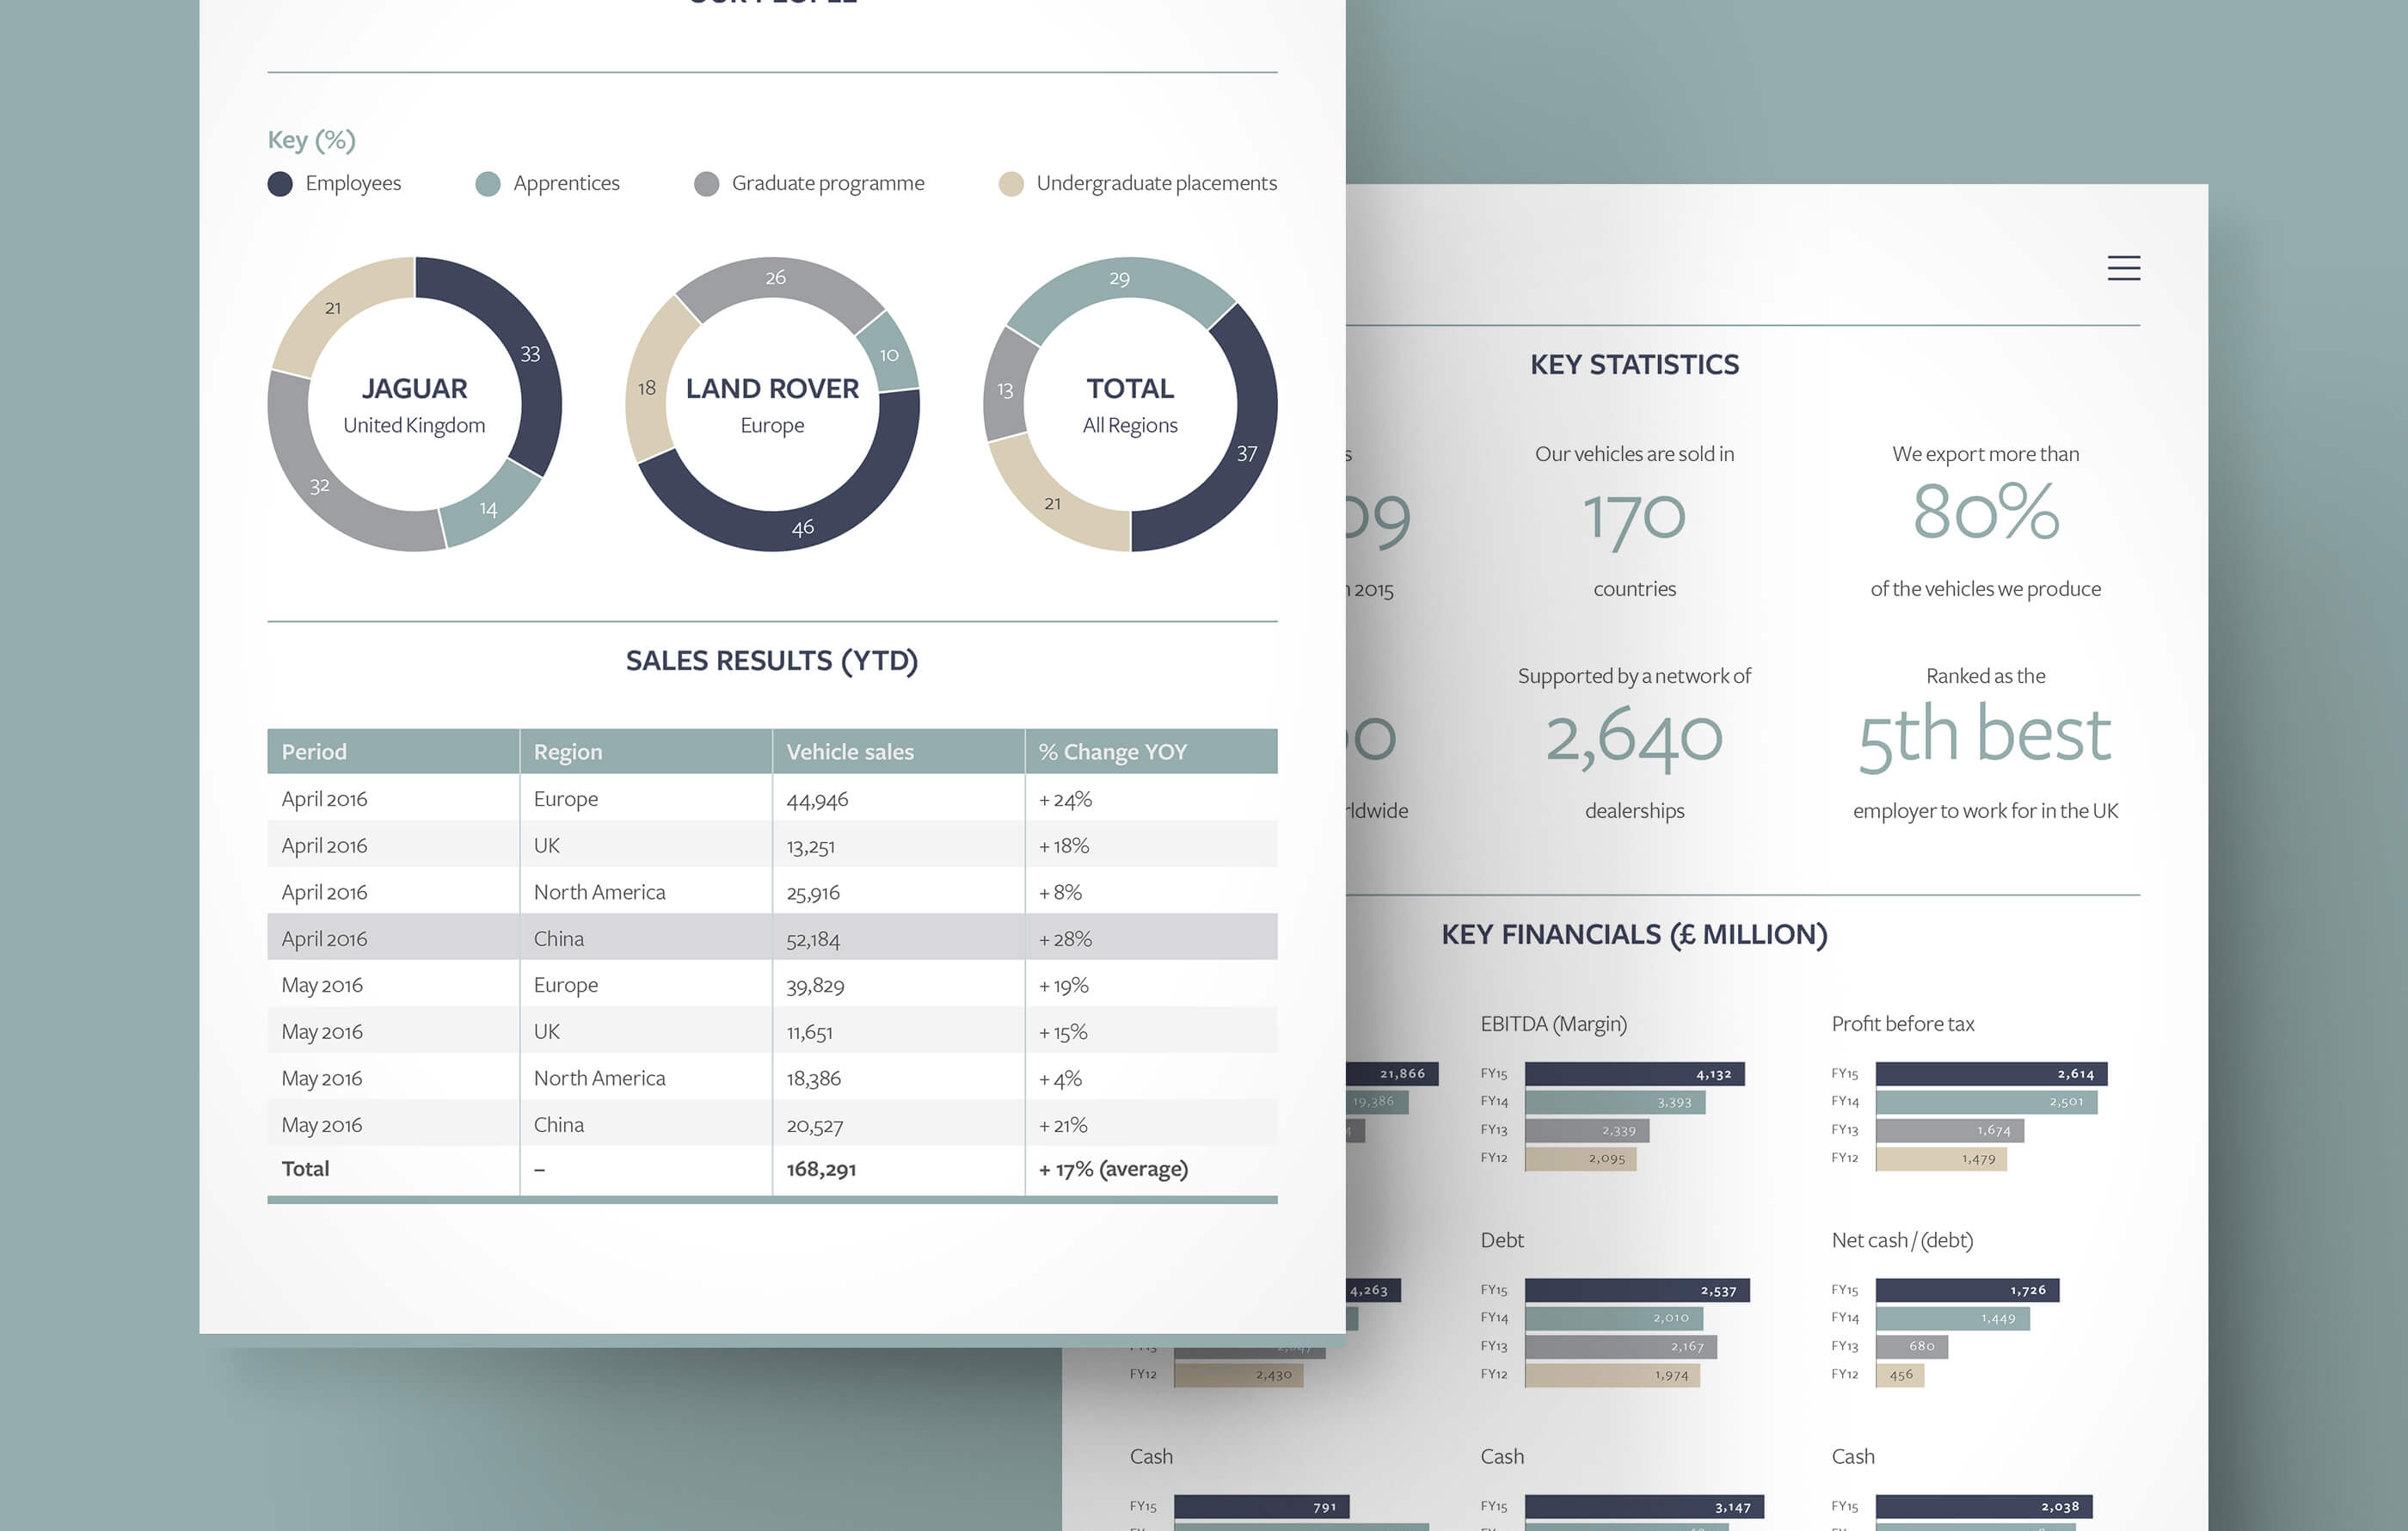 User interface design of JLR's sales results, overlapping bar charts of their key financial data